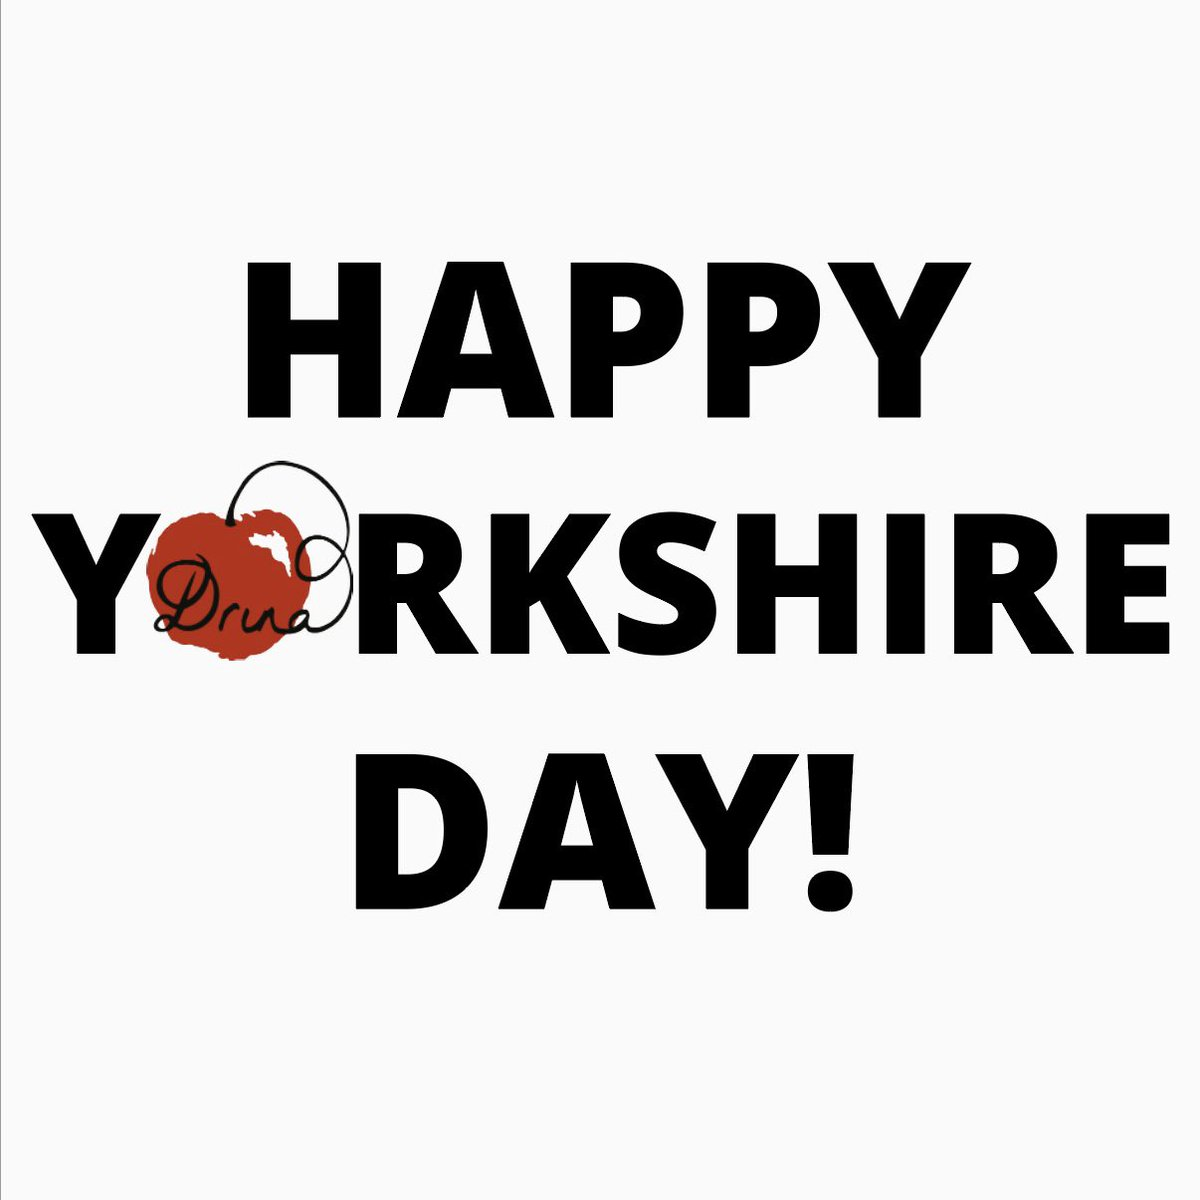 Have a great day fellow northerners! #yorkshire #yorkshireday #doncaster #doncasterisgreat #yorkshire_lovers #yorkshirelife